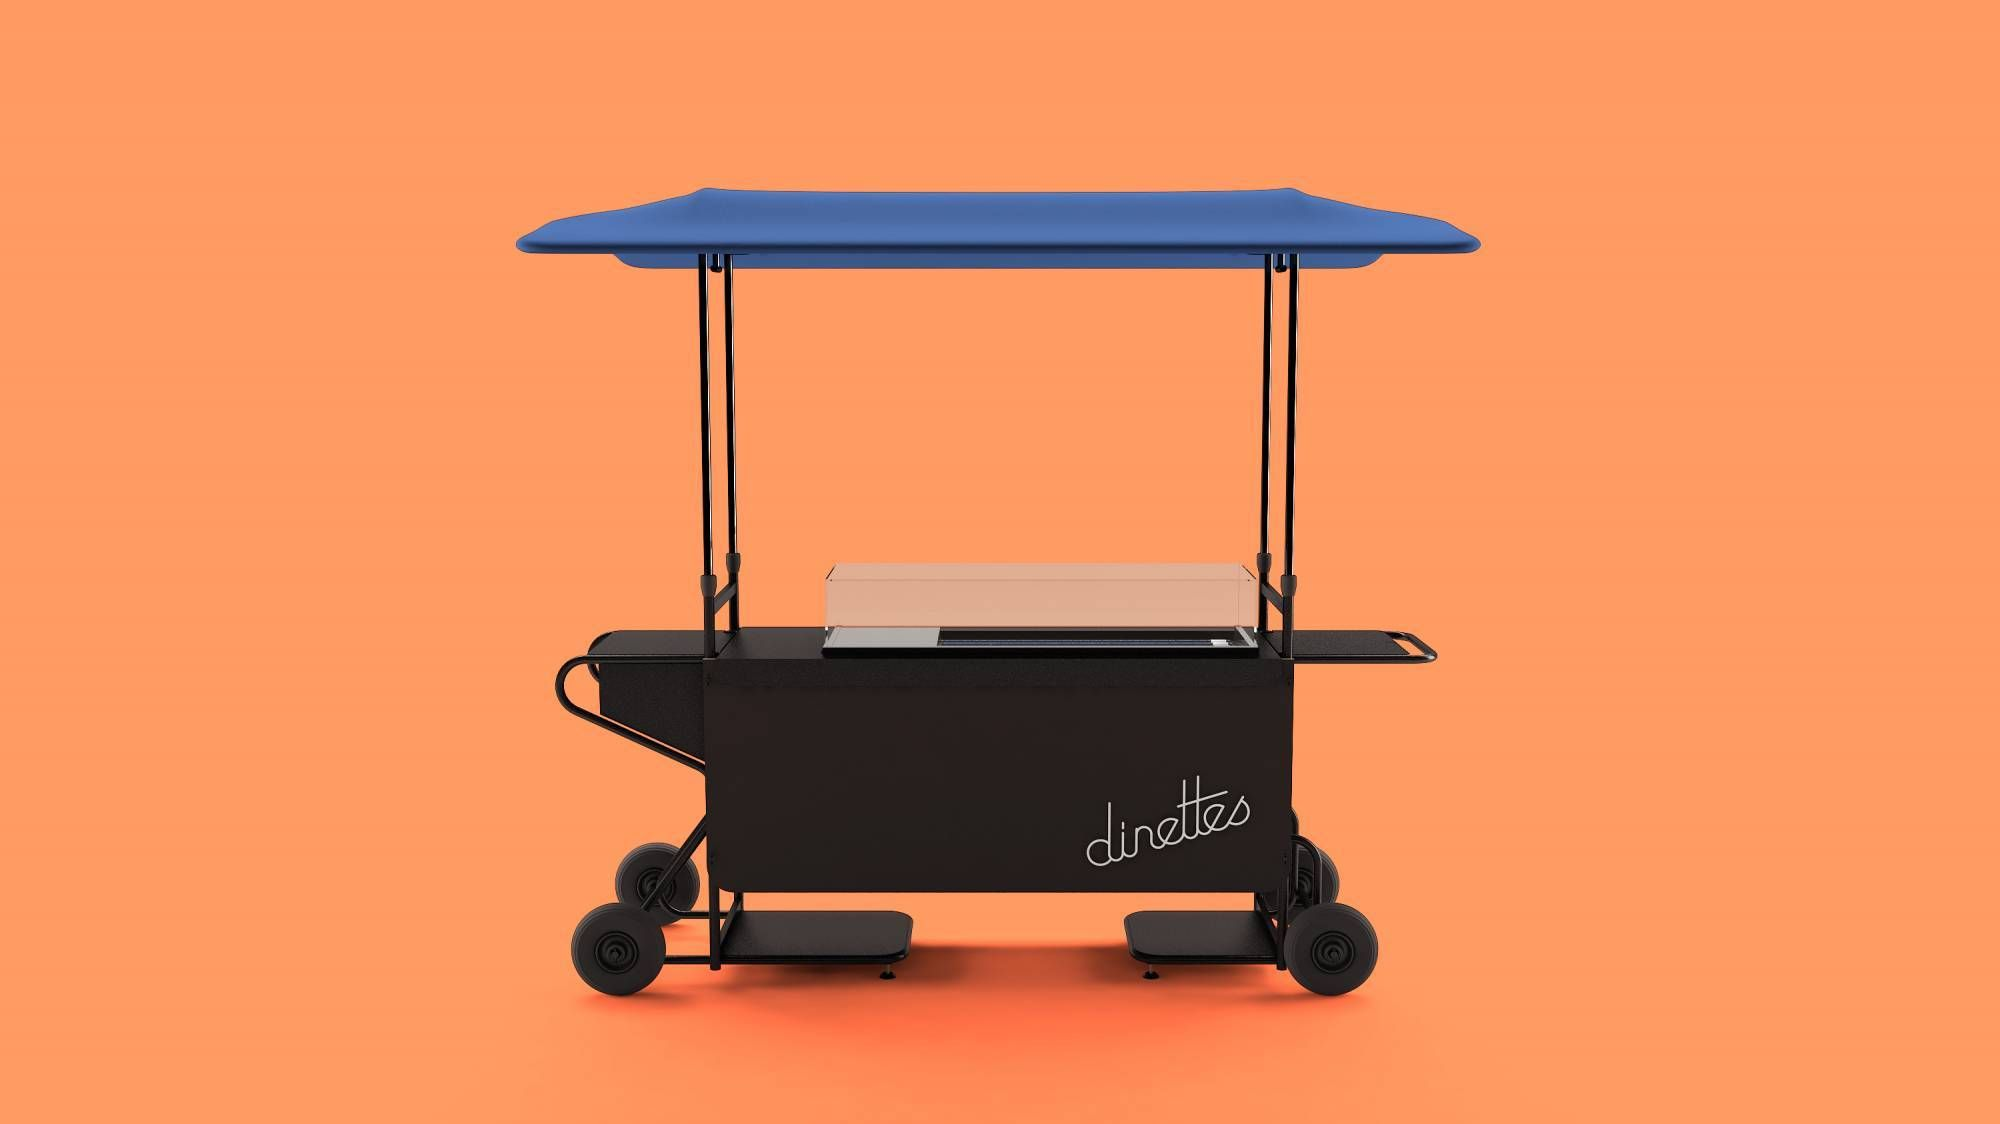 STAND DINETTES FROIDE (CHARIOT, KIOSQUE